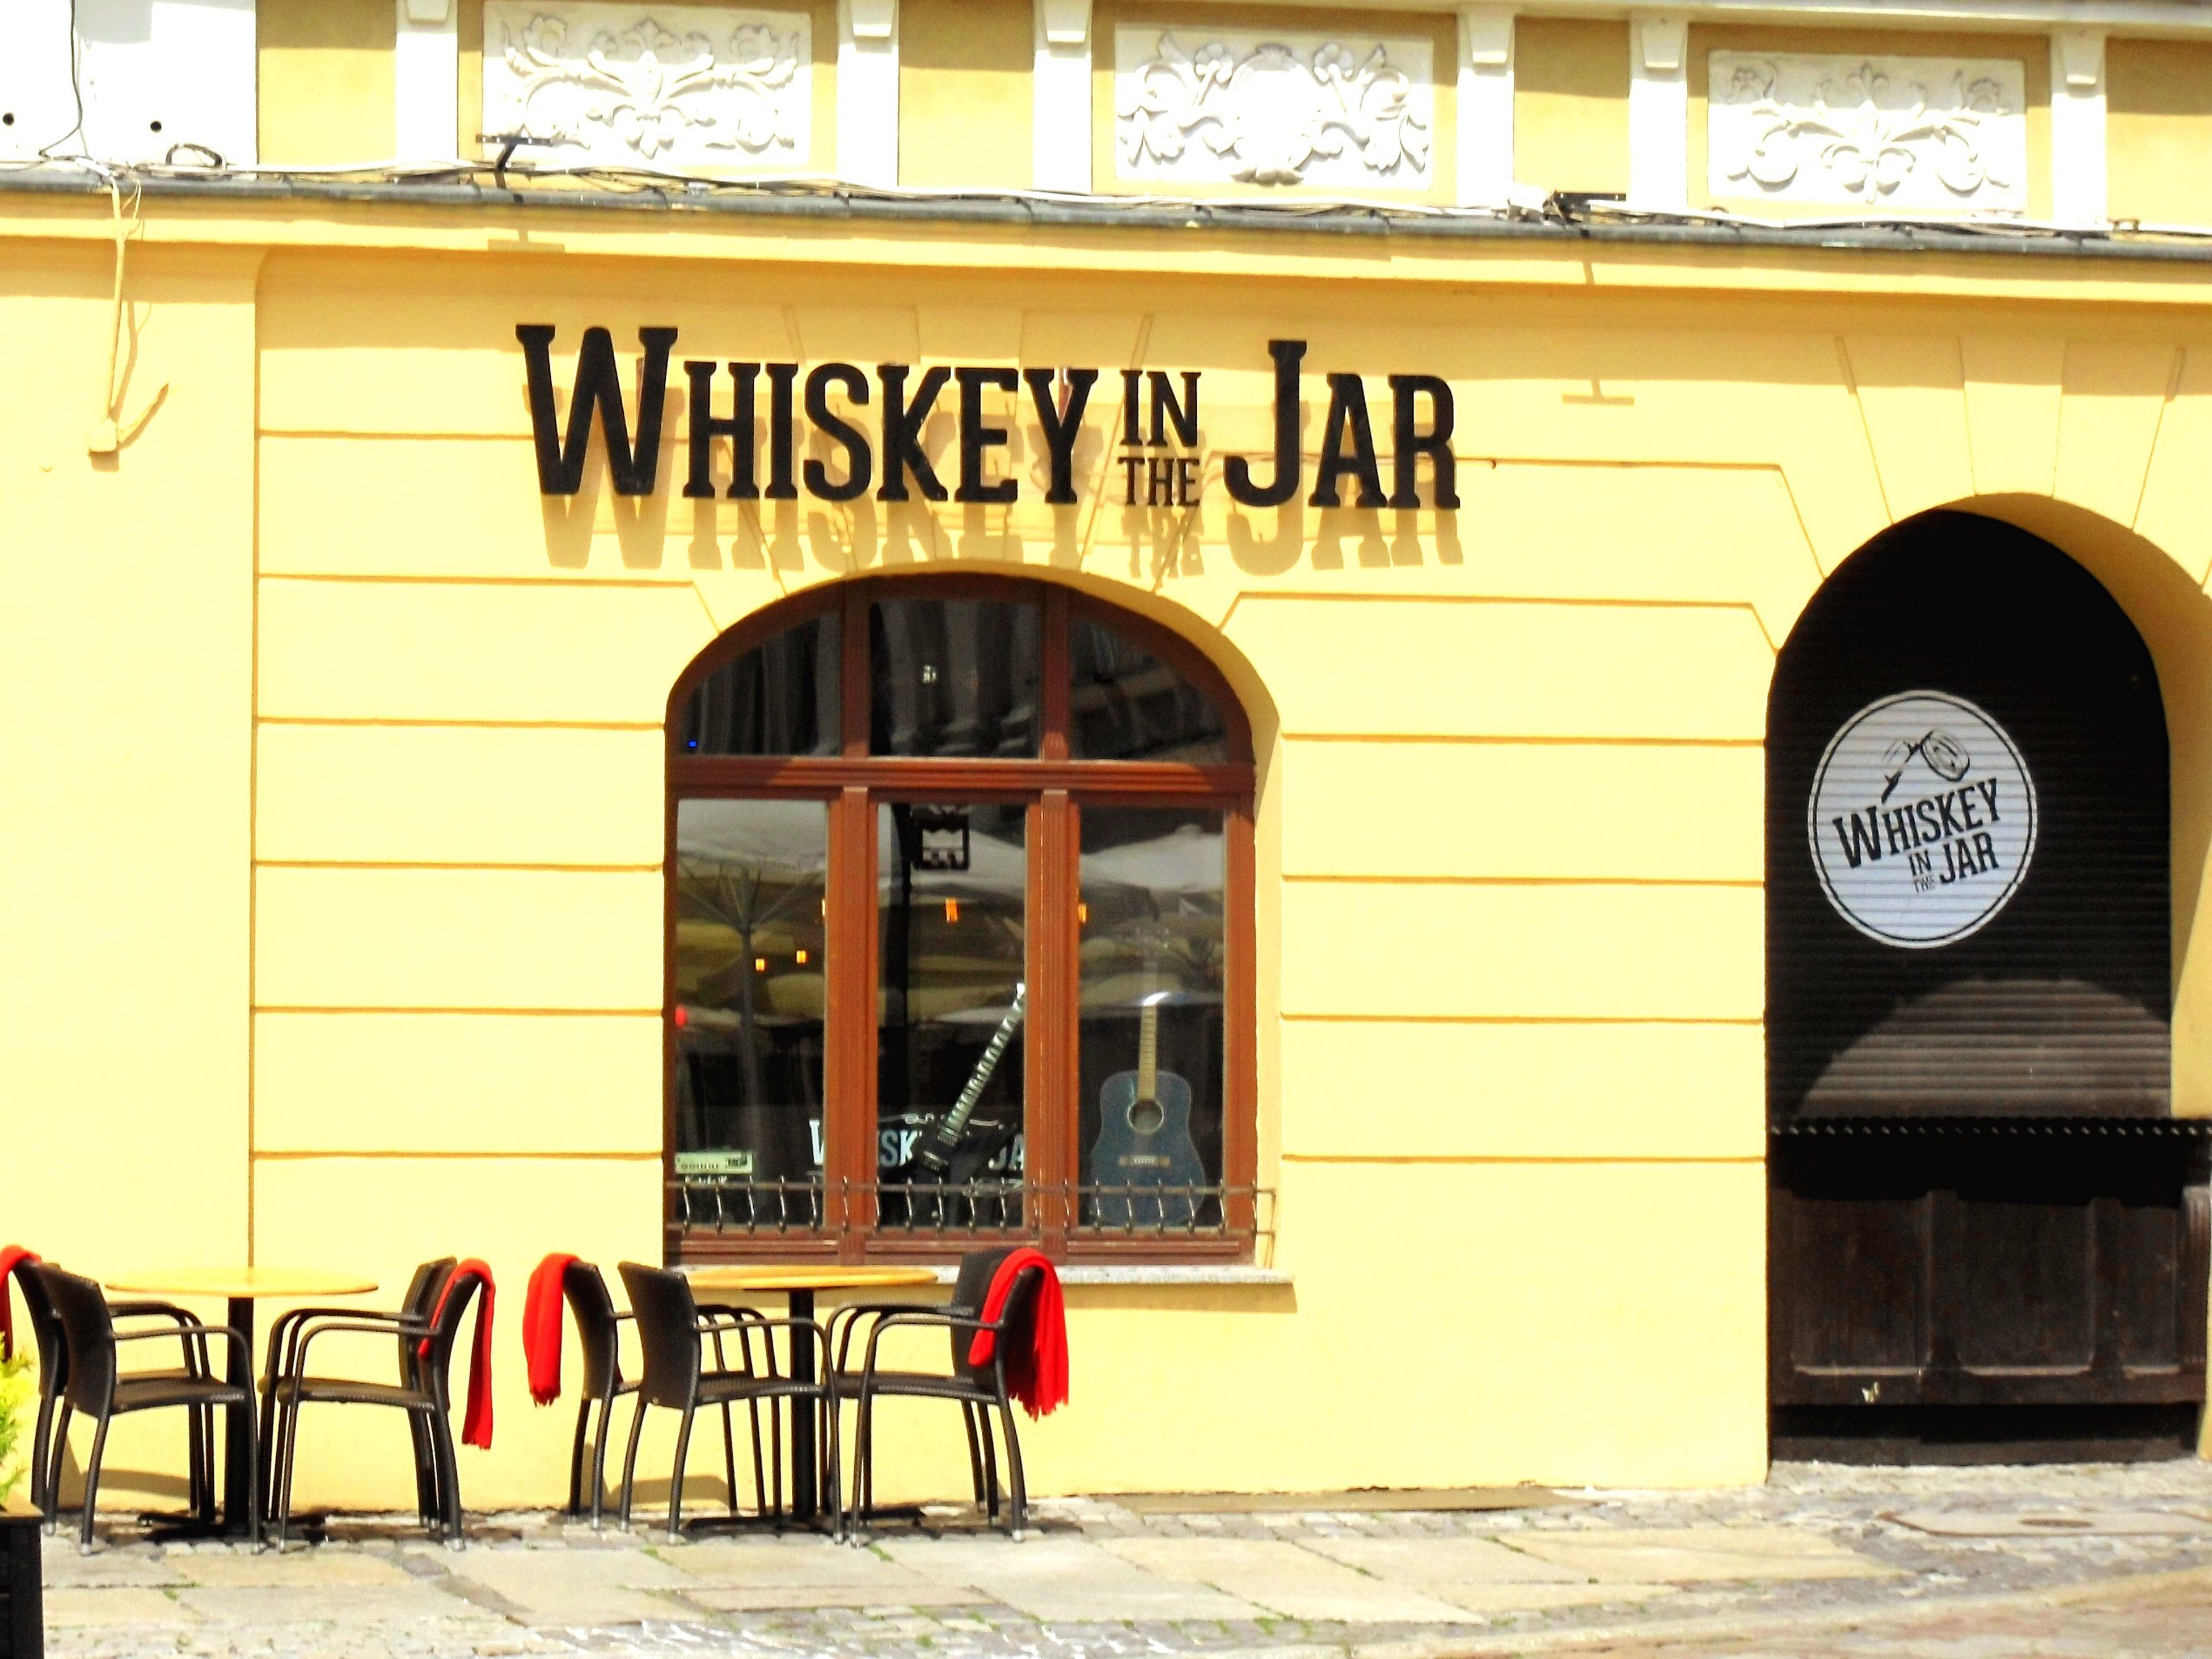 Text Chair Restaurant Table Outdoors Building Exterior No People Day Whiskey In The Jar Poznań Poland Yellow Wall Poznań Poland